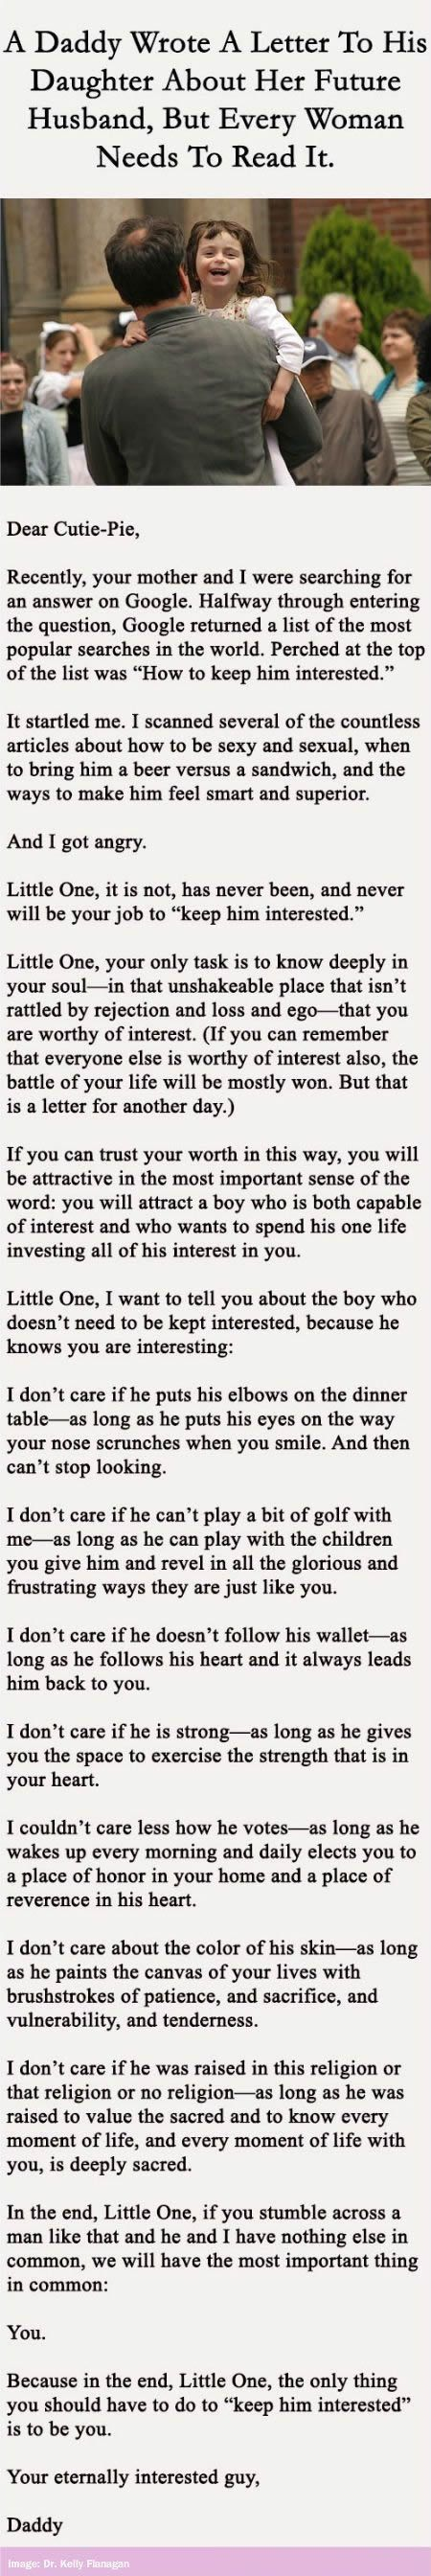 A Touching Letter Wrote By A Daddy To His Daughter.